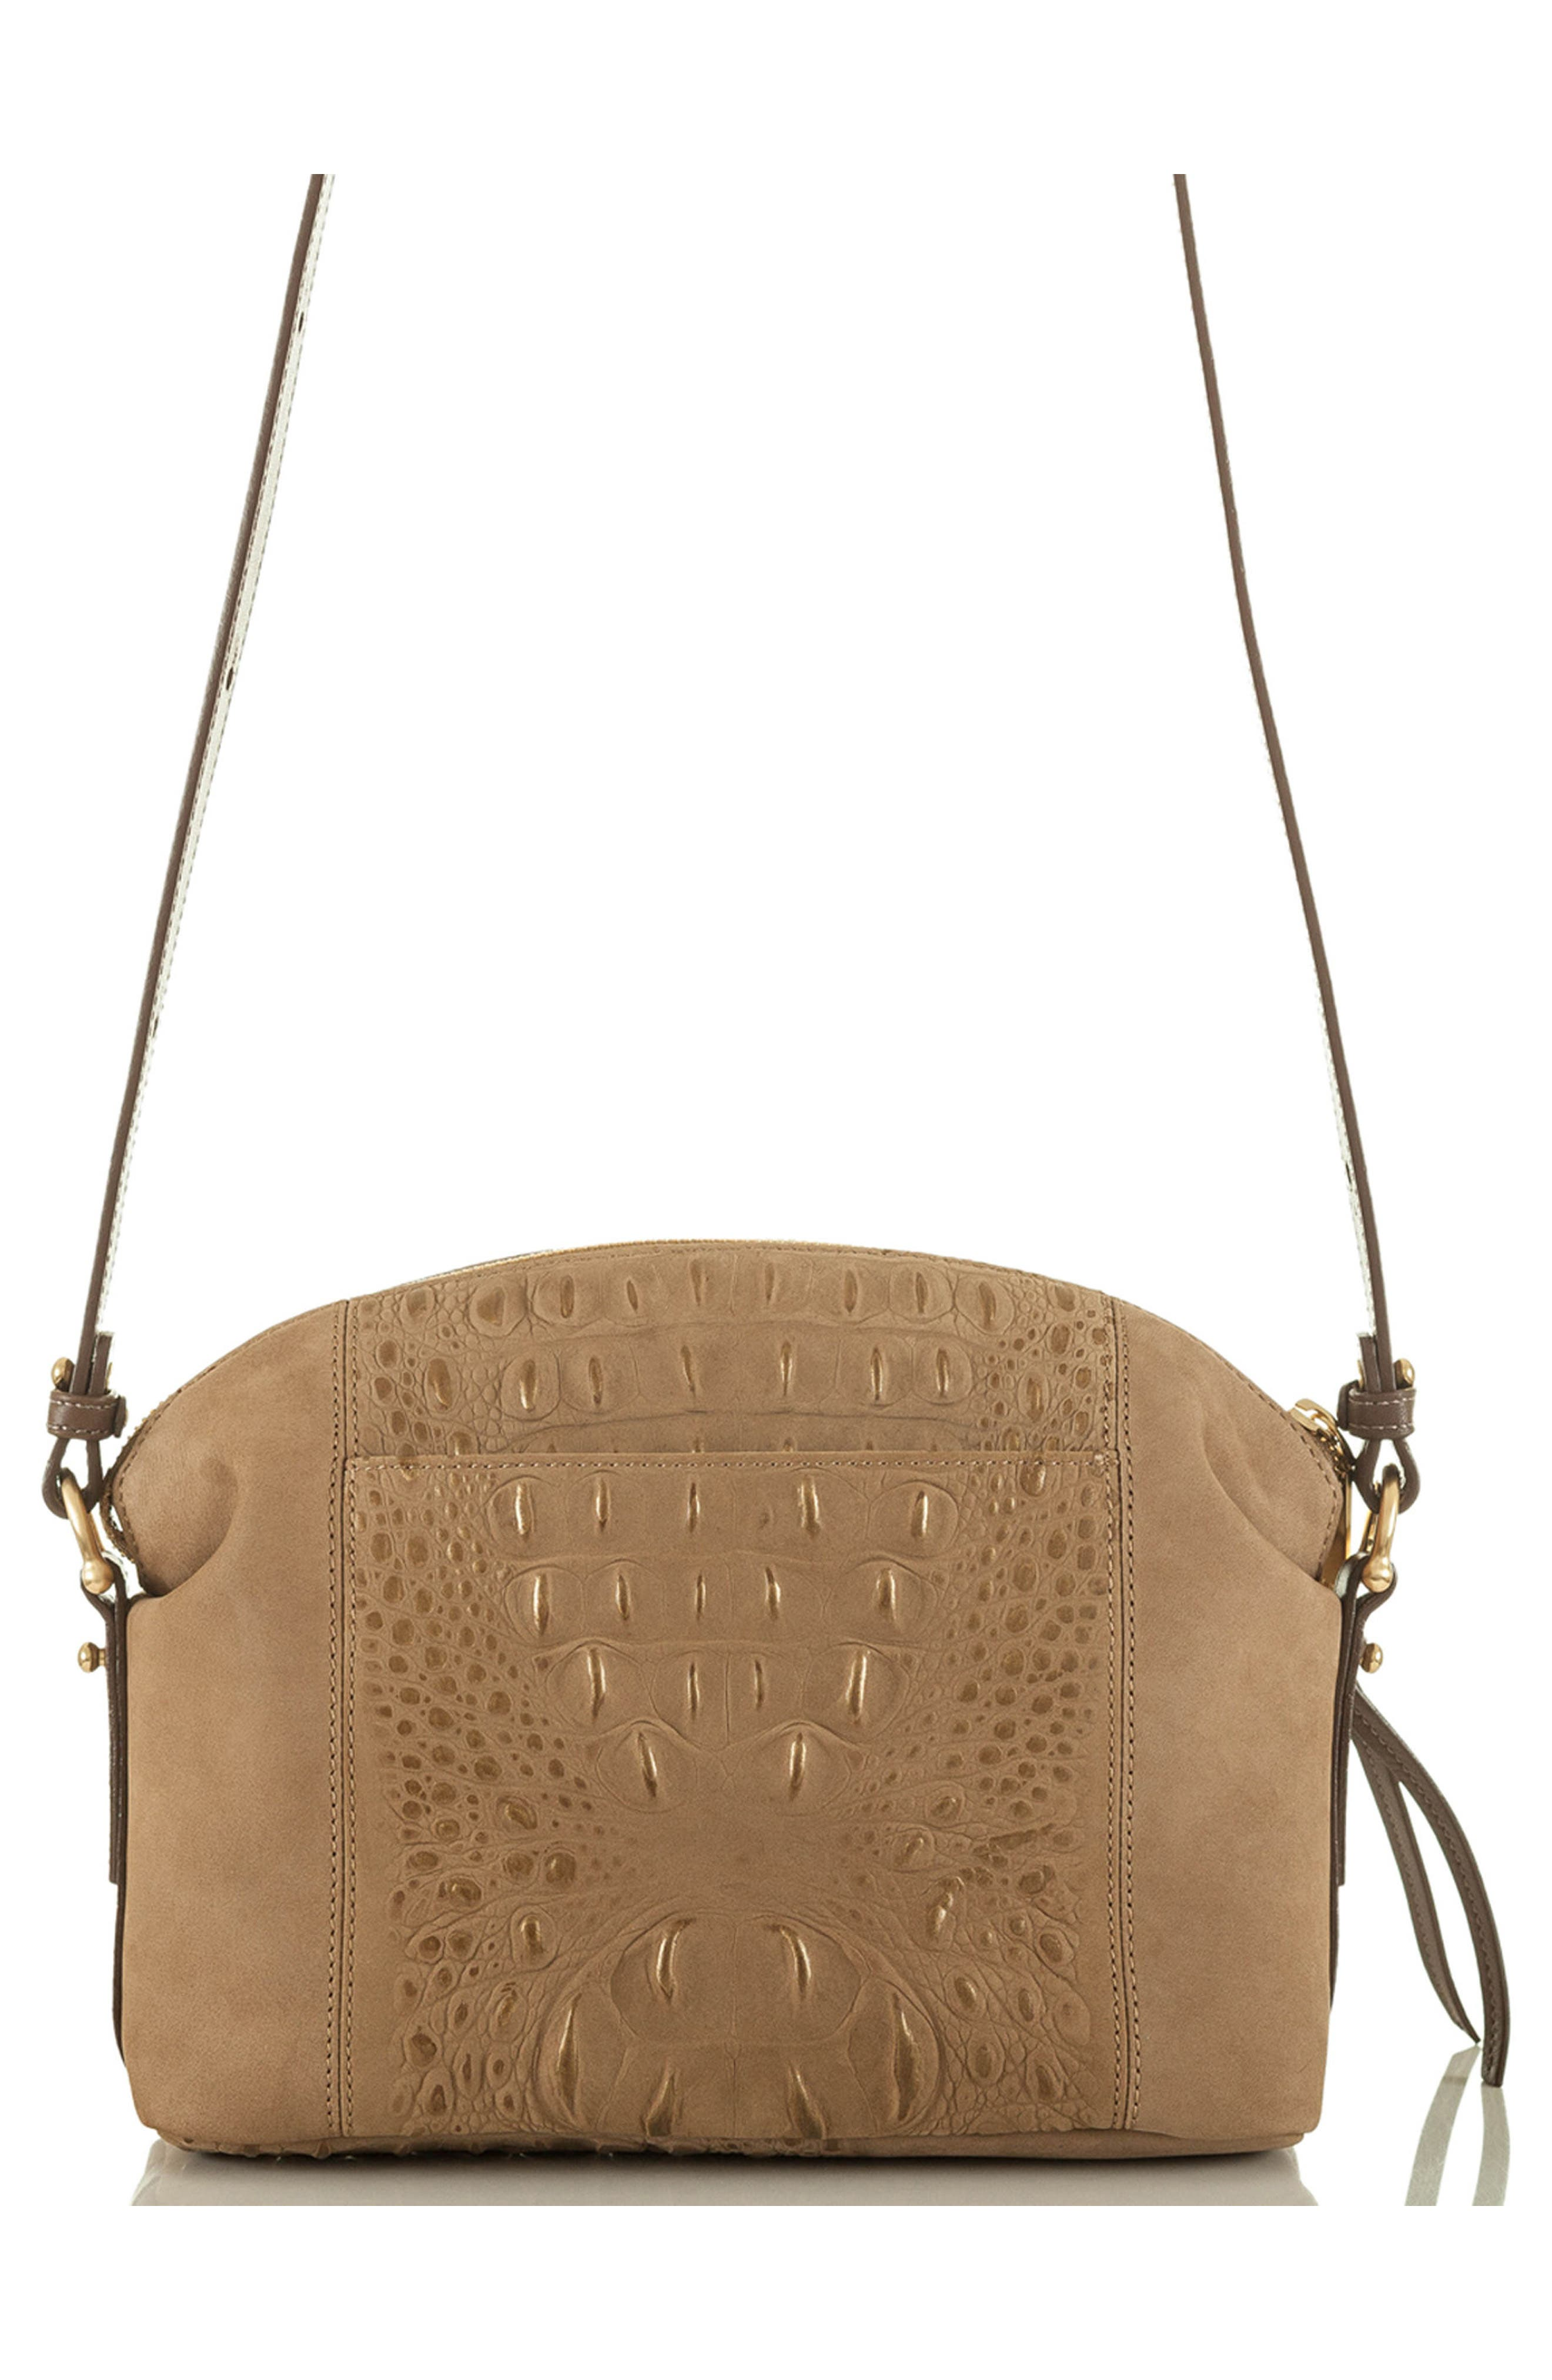 Southcast Haley Metallic Croc Embossed Leather Crossbody Bag,                             Alternate thumbnail 2, color,